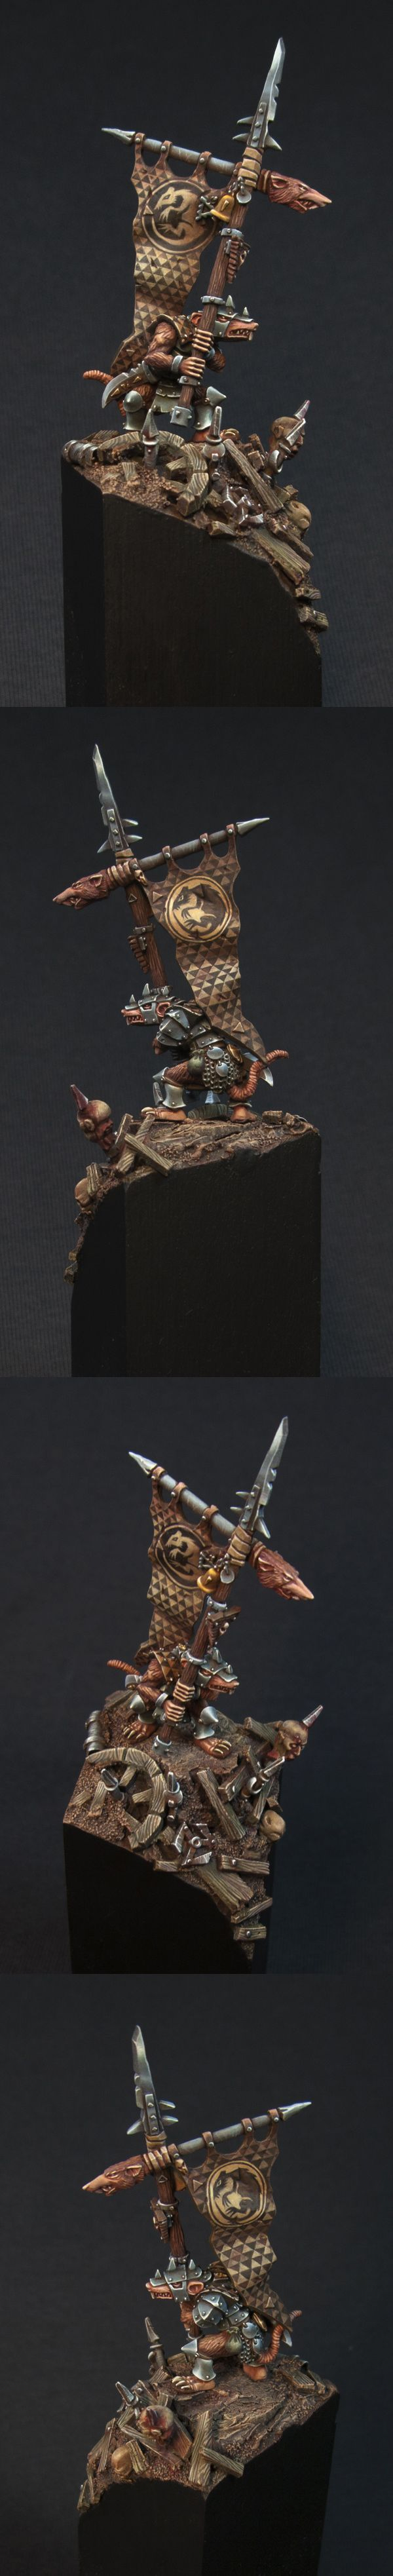 Skaven Army Standard - In The Middle